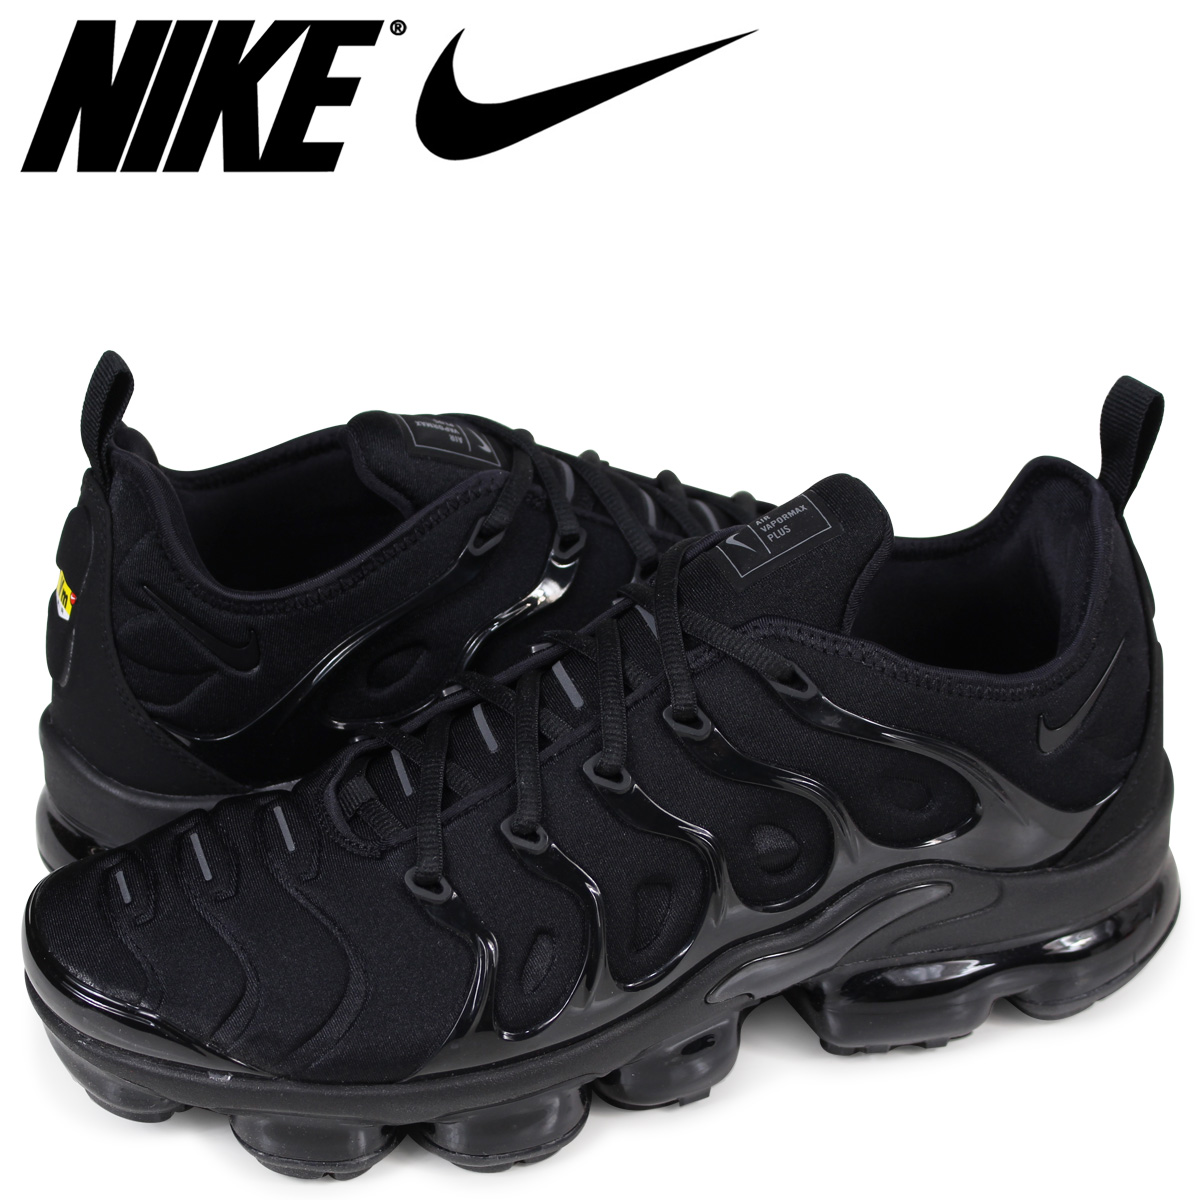 best authentic e1f47 b0483 NIKE AIR VAPORMAX PLUS Nike air vapor max plus sneakers men black  924,453-004